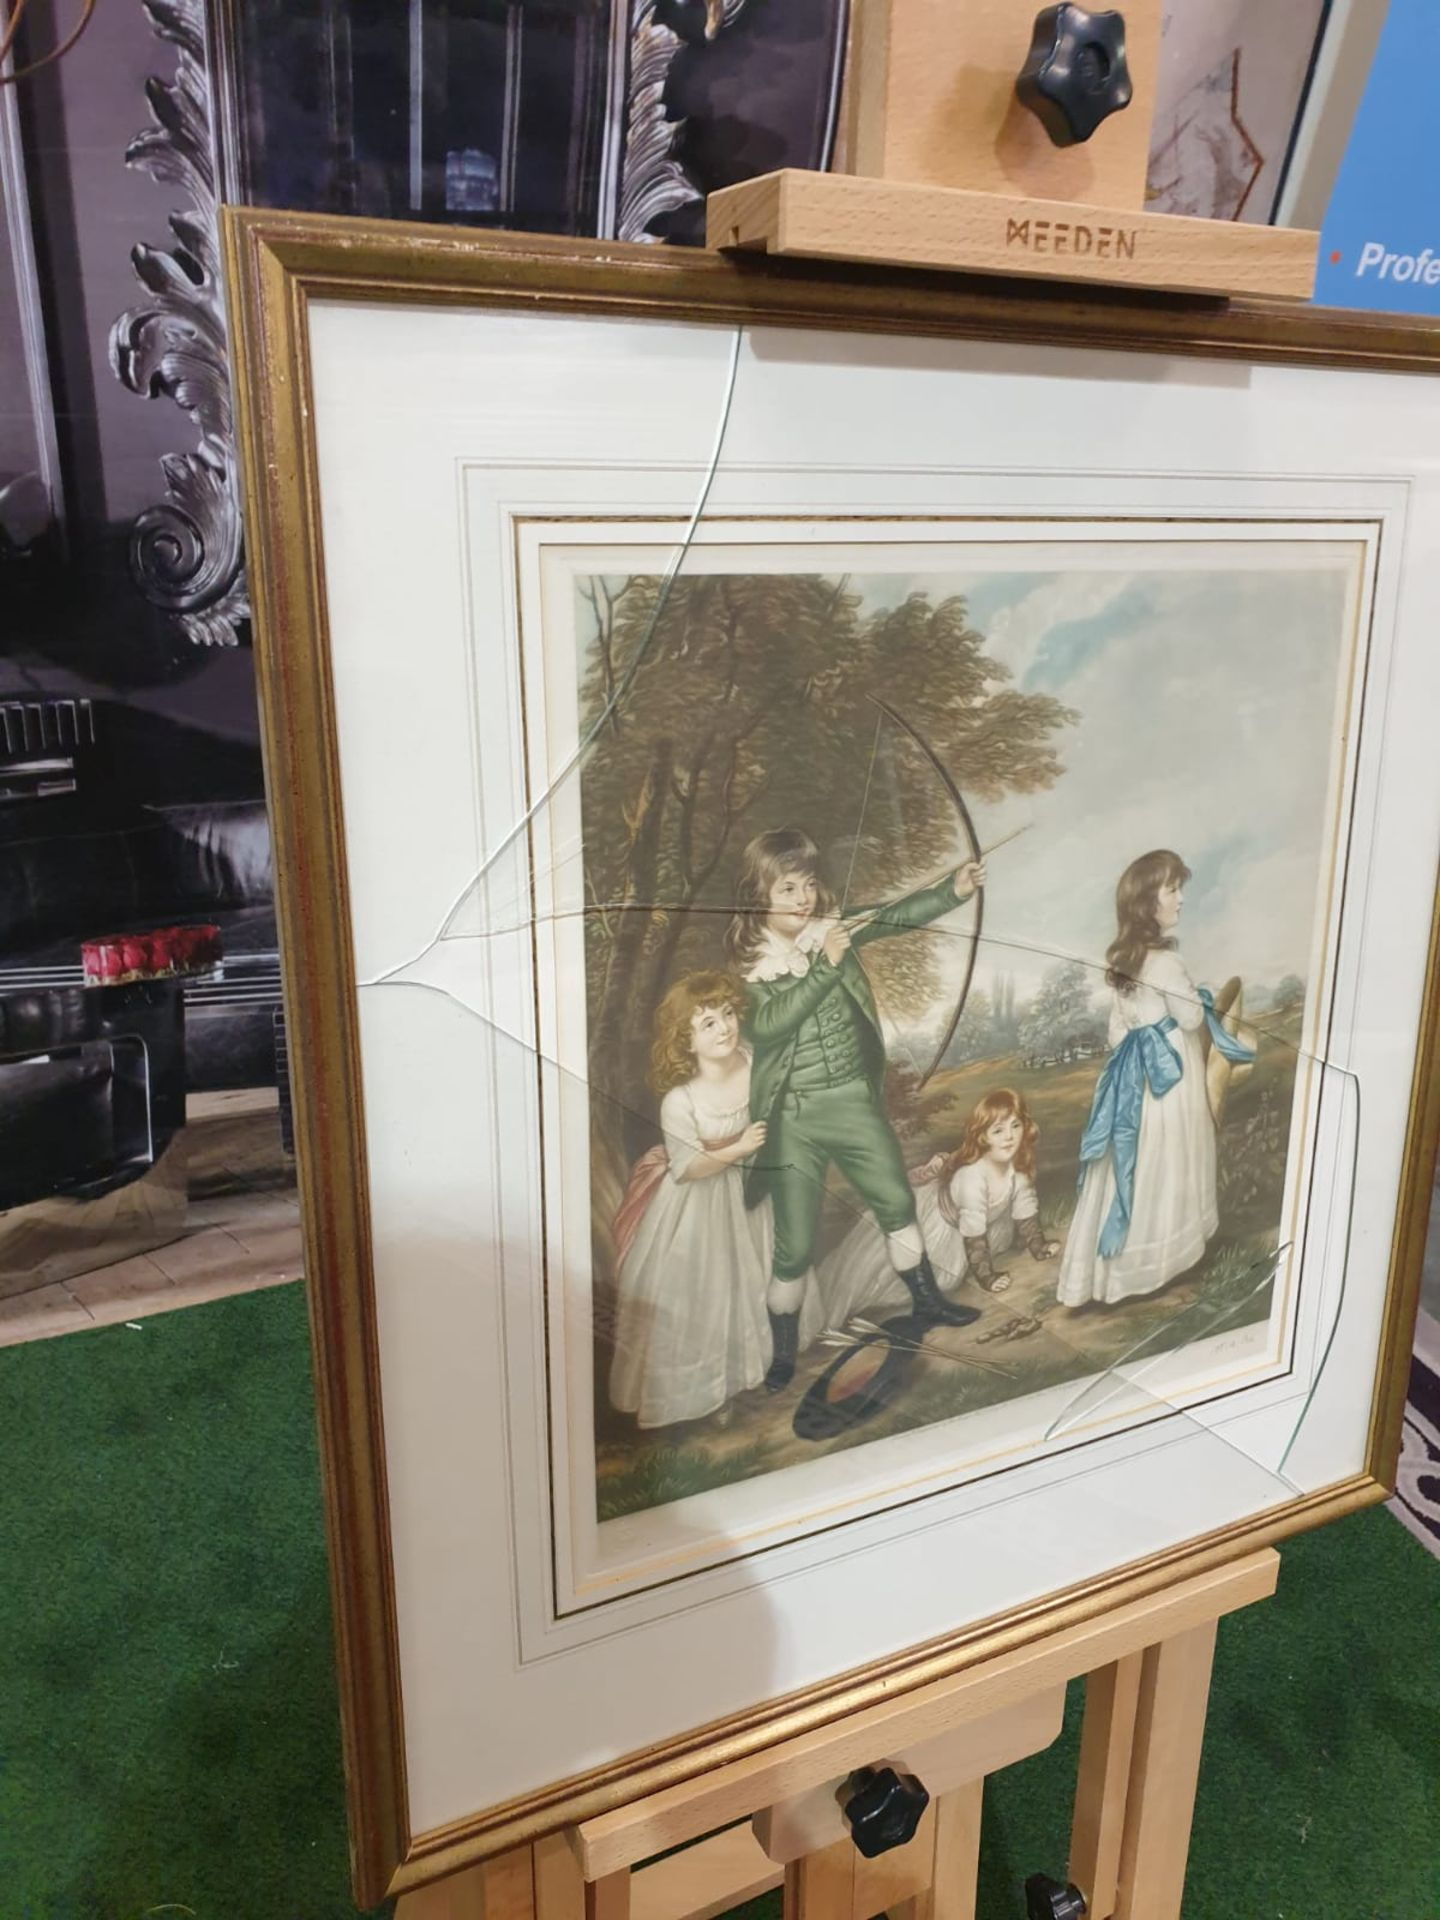 Framed coloured print of 4 Children playing, 1 child doing archery, hat and arrows on ground in - Image 3 of 5